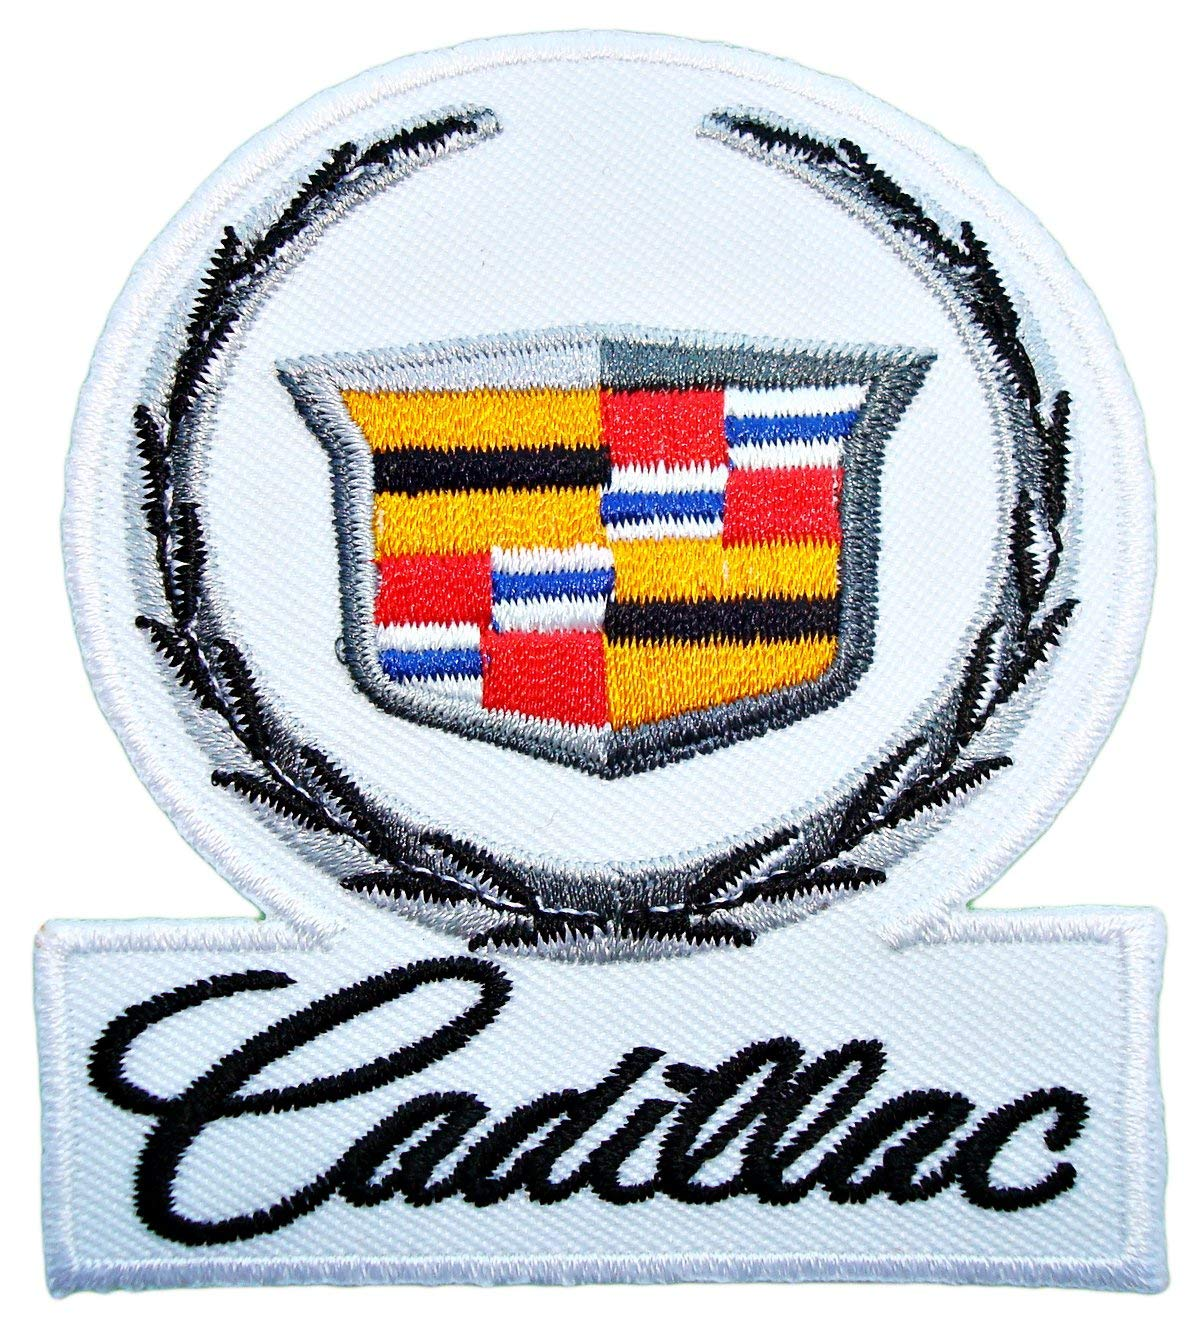 CADILLAC Cts escalade Sts Srx Cars Logo Shirt Embroidered Patch 2.75 x 2.75 inches Logo Sew Ironed On Badge Embroidery Applique Patch.